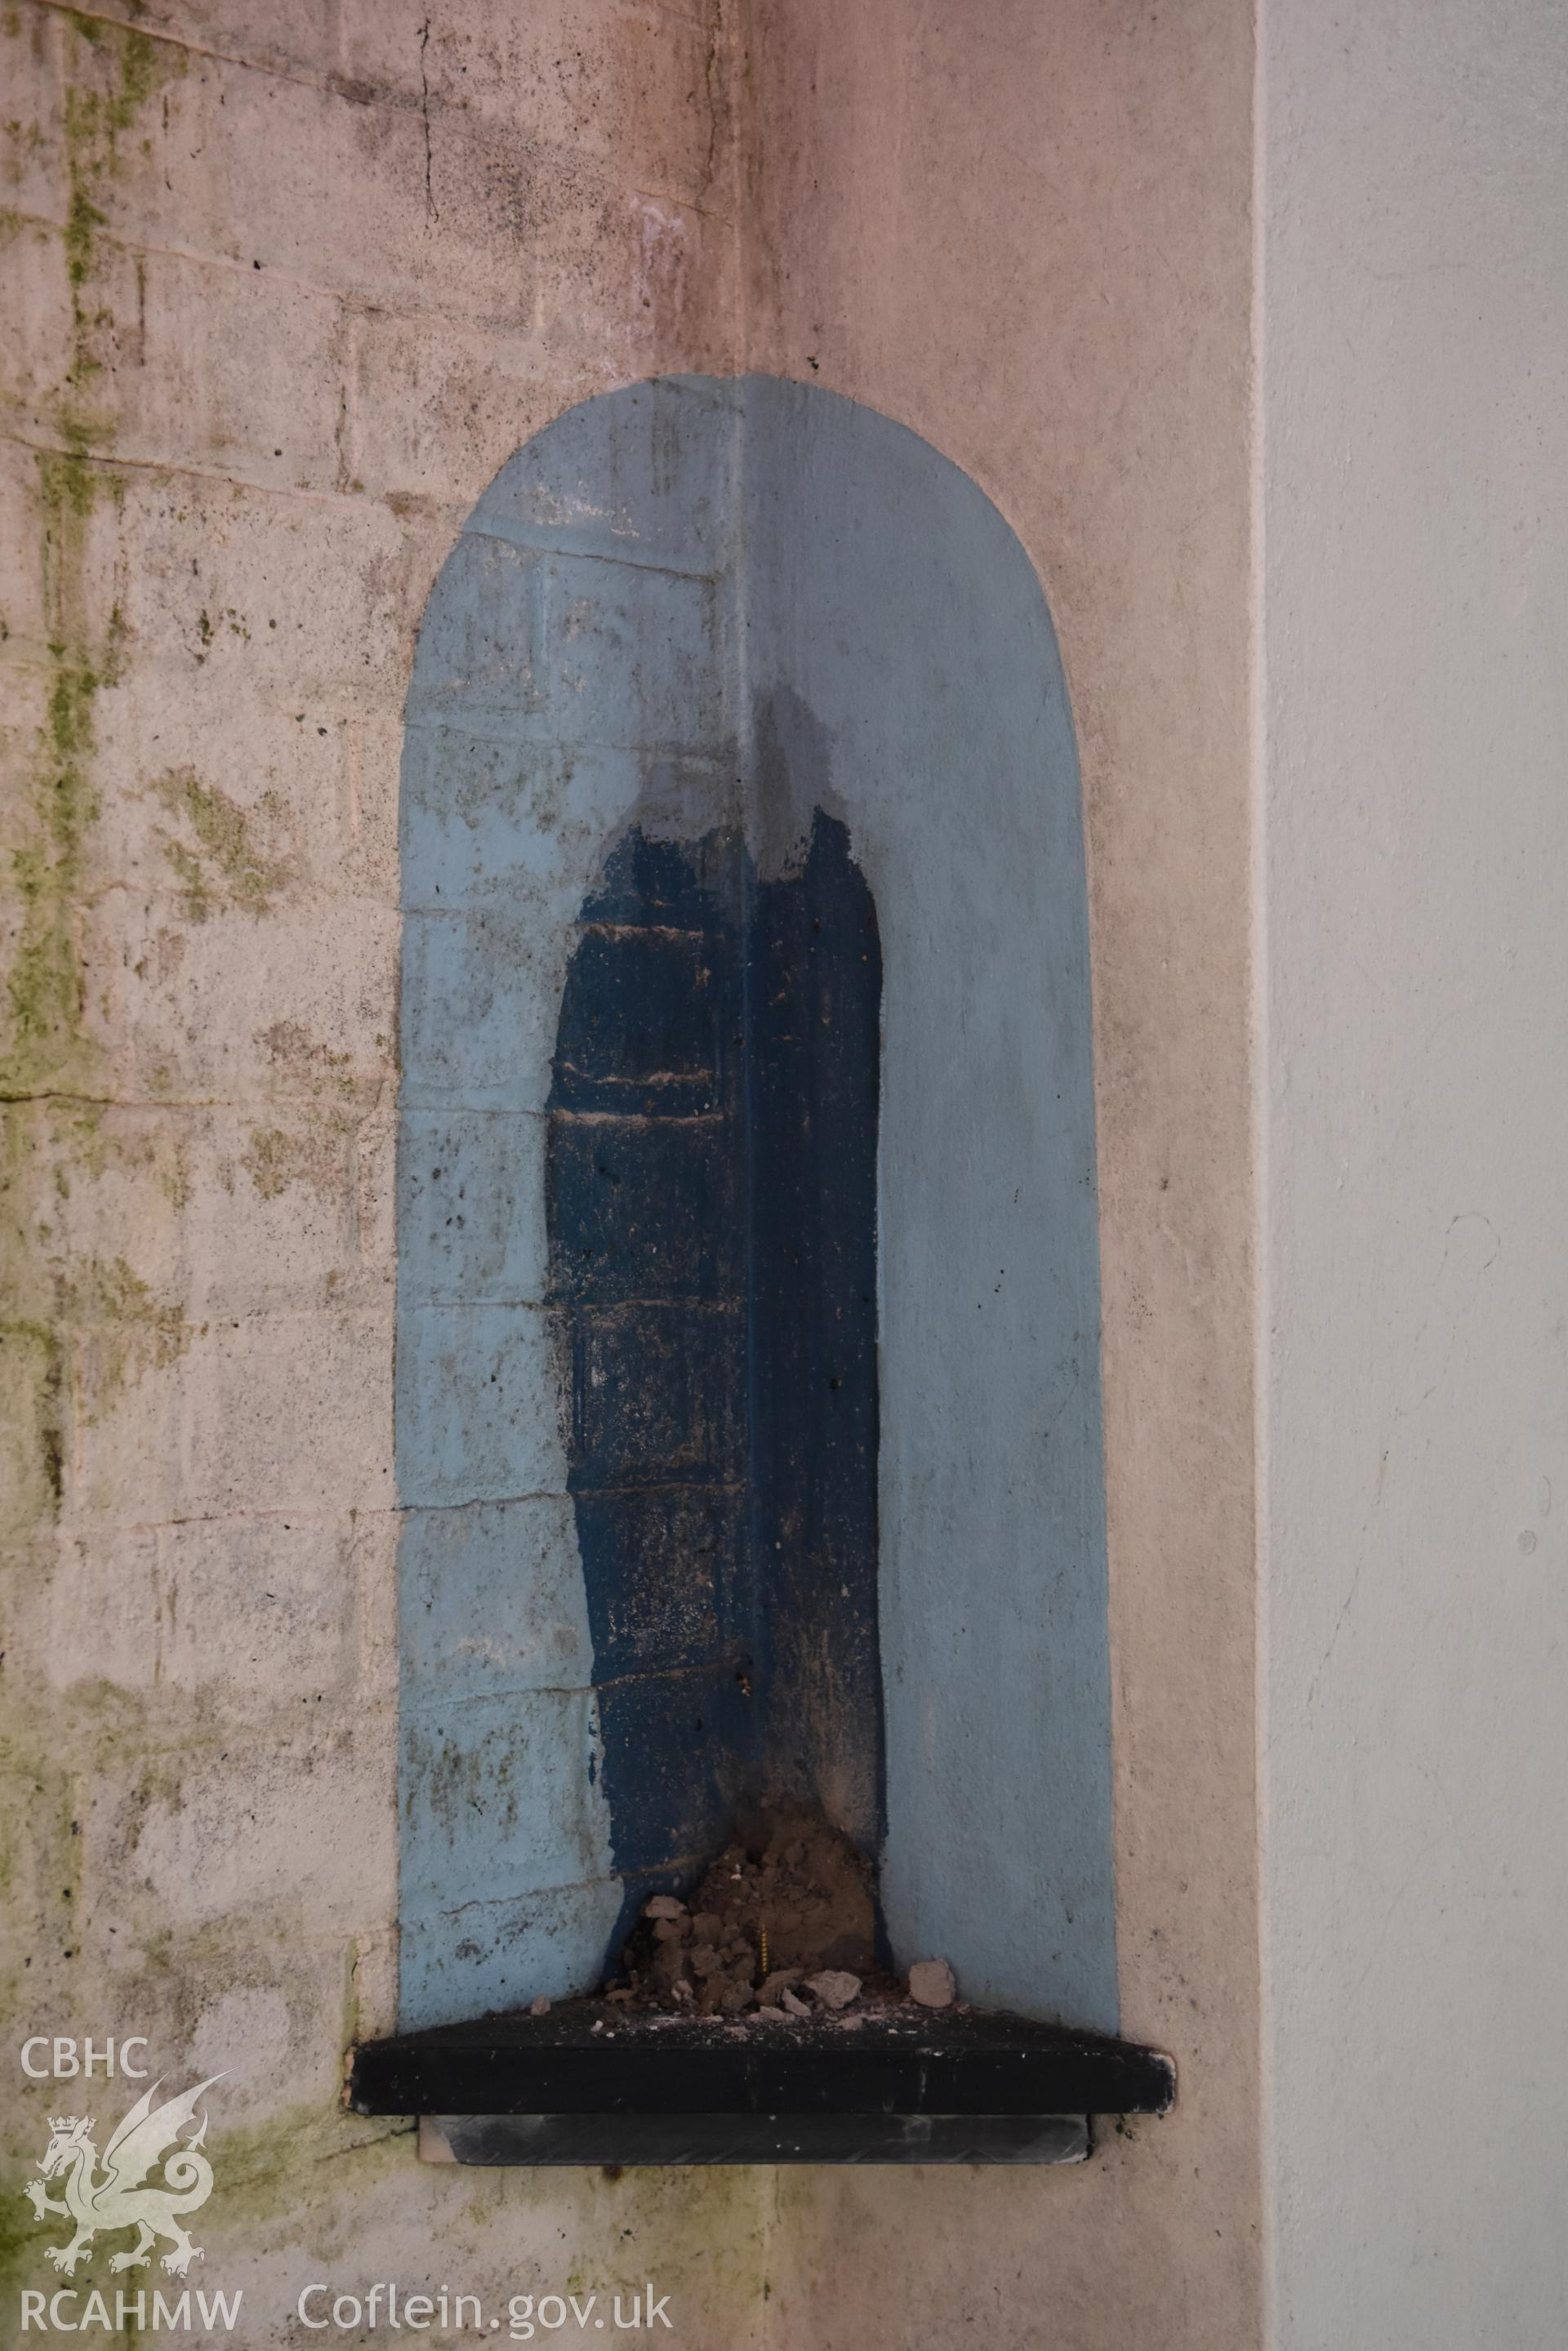 Detailed view of alcove at the Catholic Church of the Holy Spirit, Criccieth. Photographed during survey conducted by Sue Fielding for the RCAHMW, 21st January 2019.